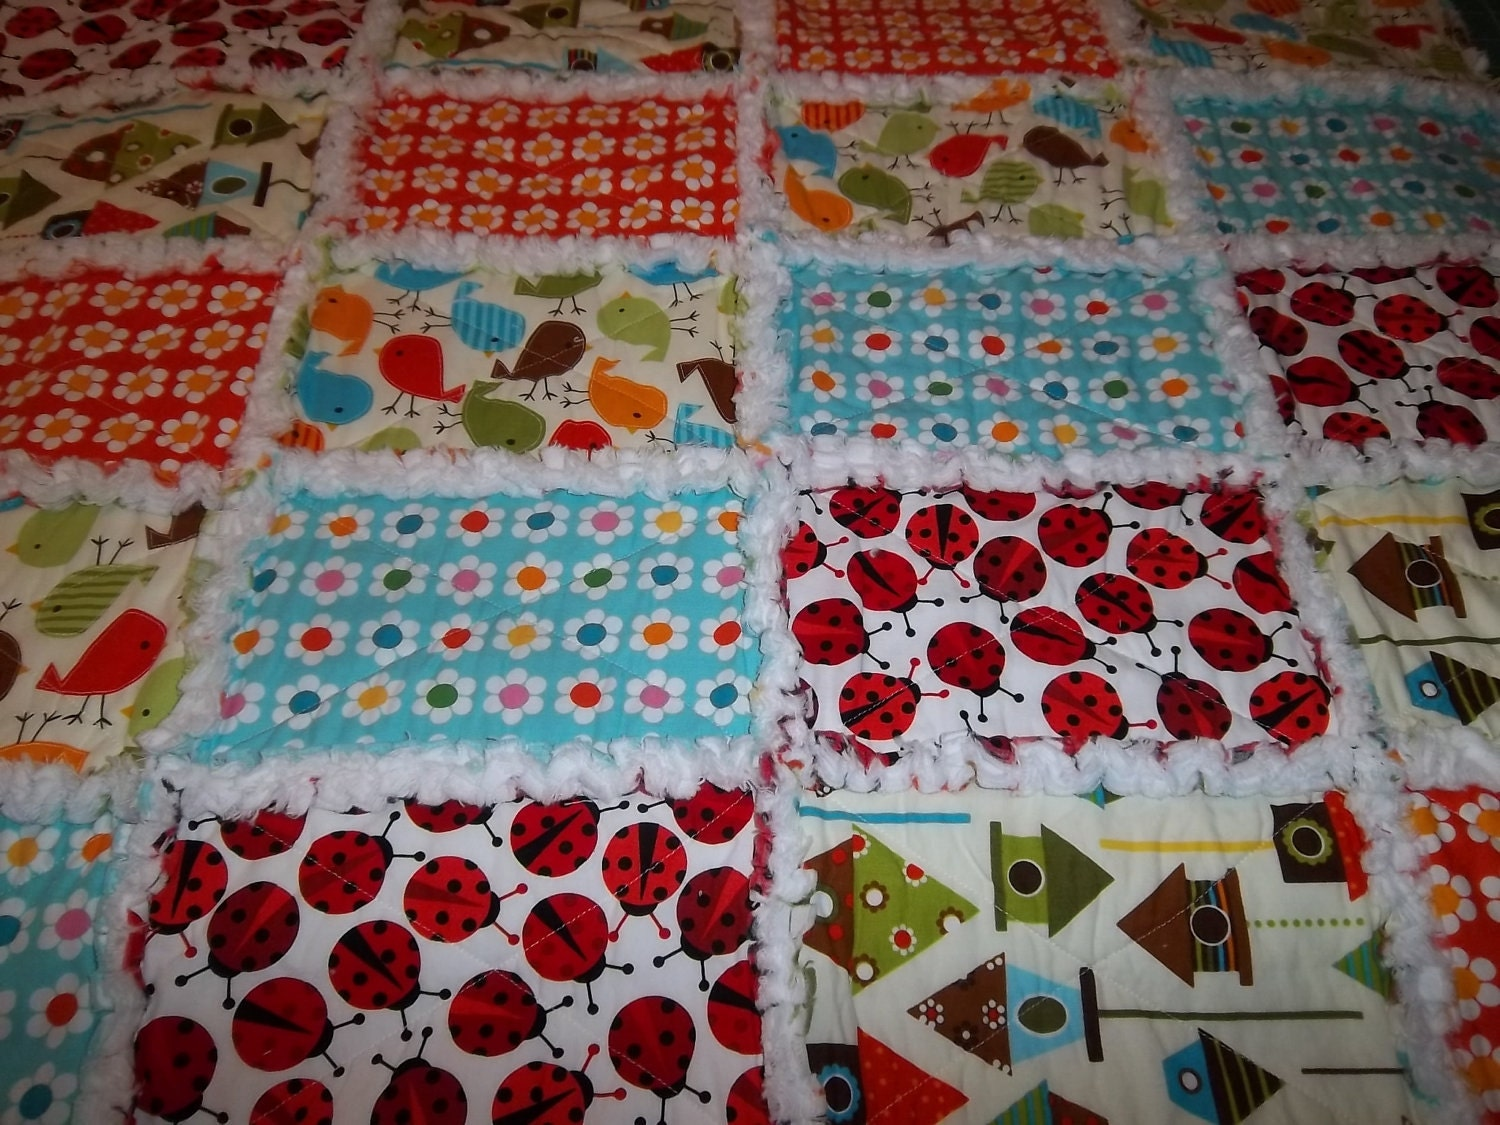 Free Easy Quilt Patterns Instructions : Rag Quilt Patterns on Pinterest Rag Quilt Patterns, Rag Quilt Tutorials and Flannel Rag Quilts